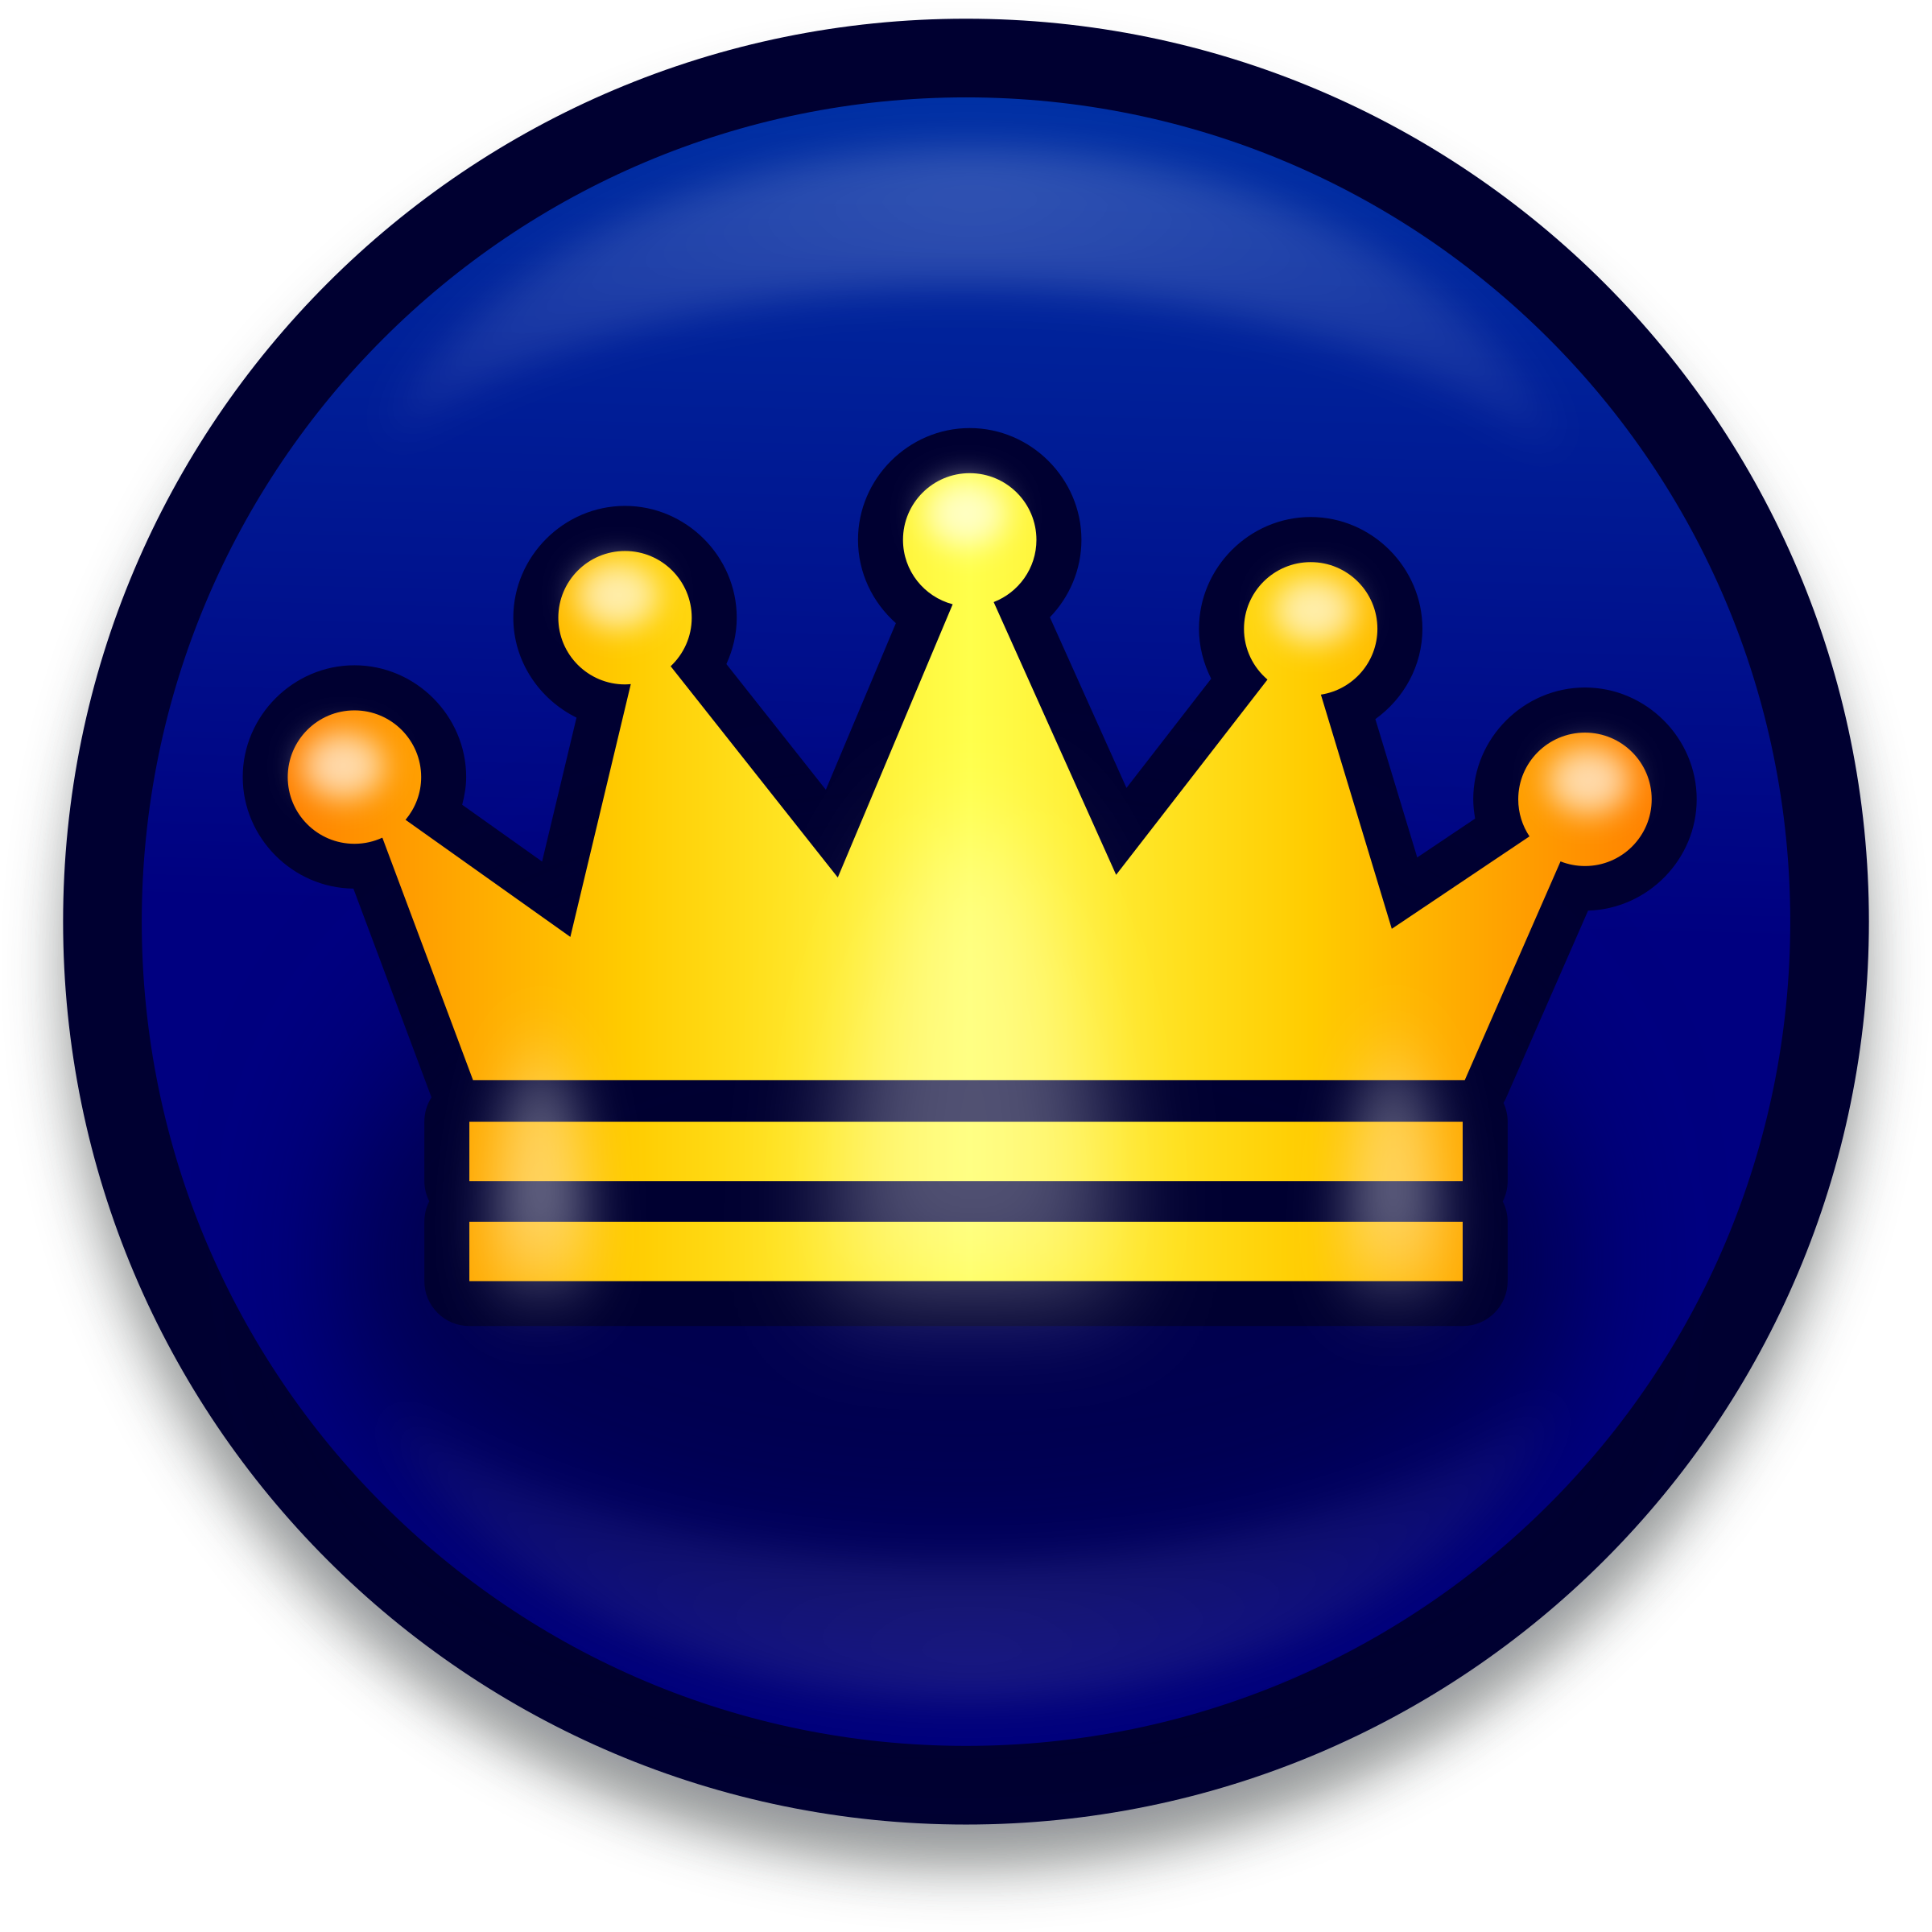 Golden crown symbol - icon by lukeb